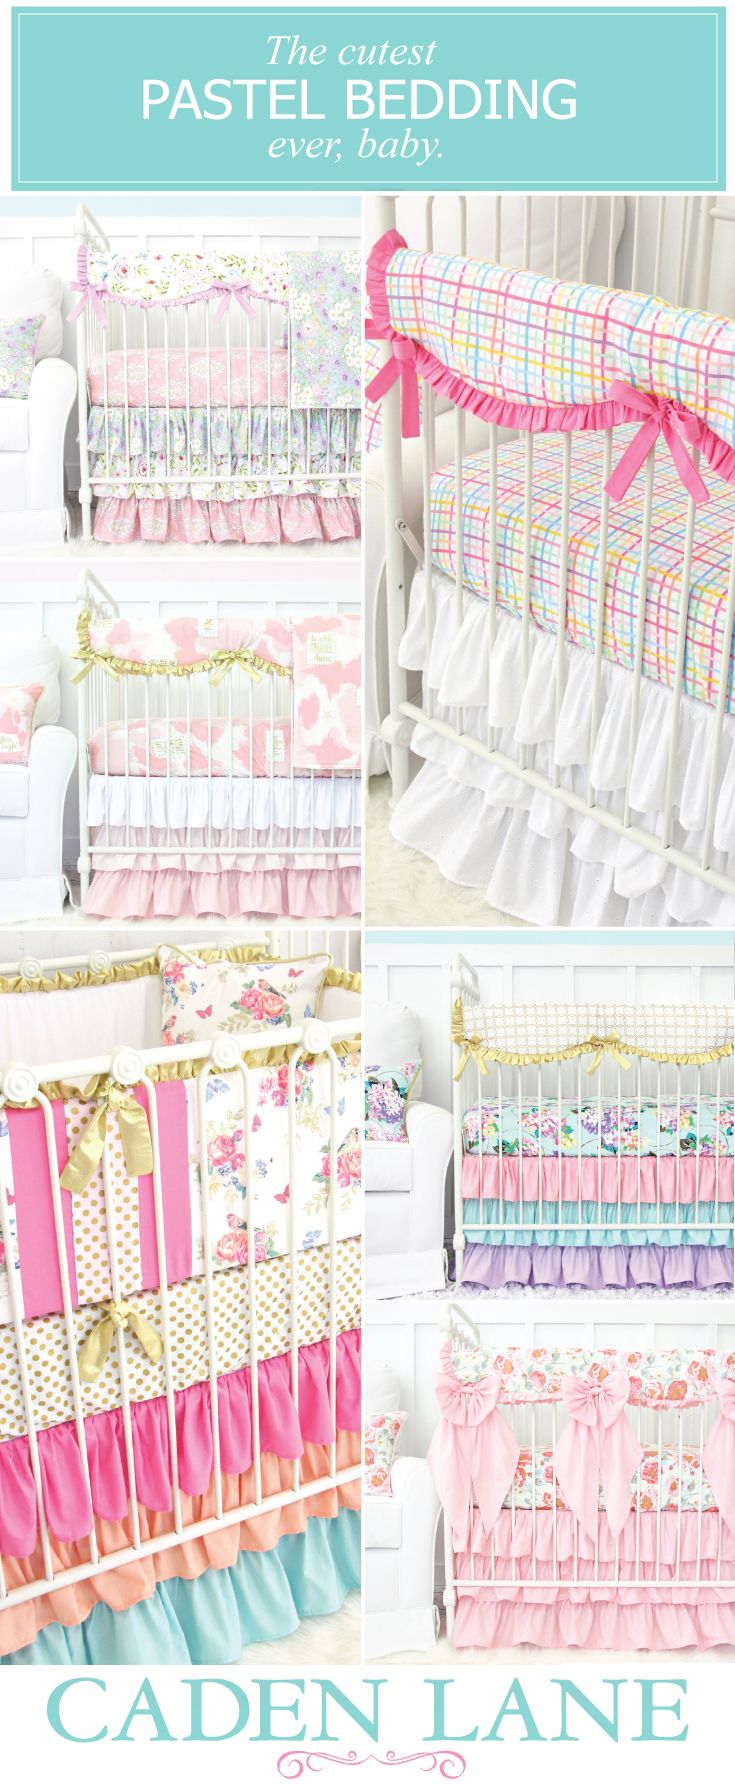 Best ideas about pastel nursery on pinterest nursery colours pastel - Shop All Of Our Pastel Crib Bedding Collections And Start Designing Your Dream Nursery Today